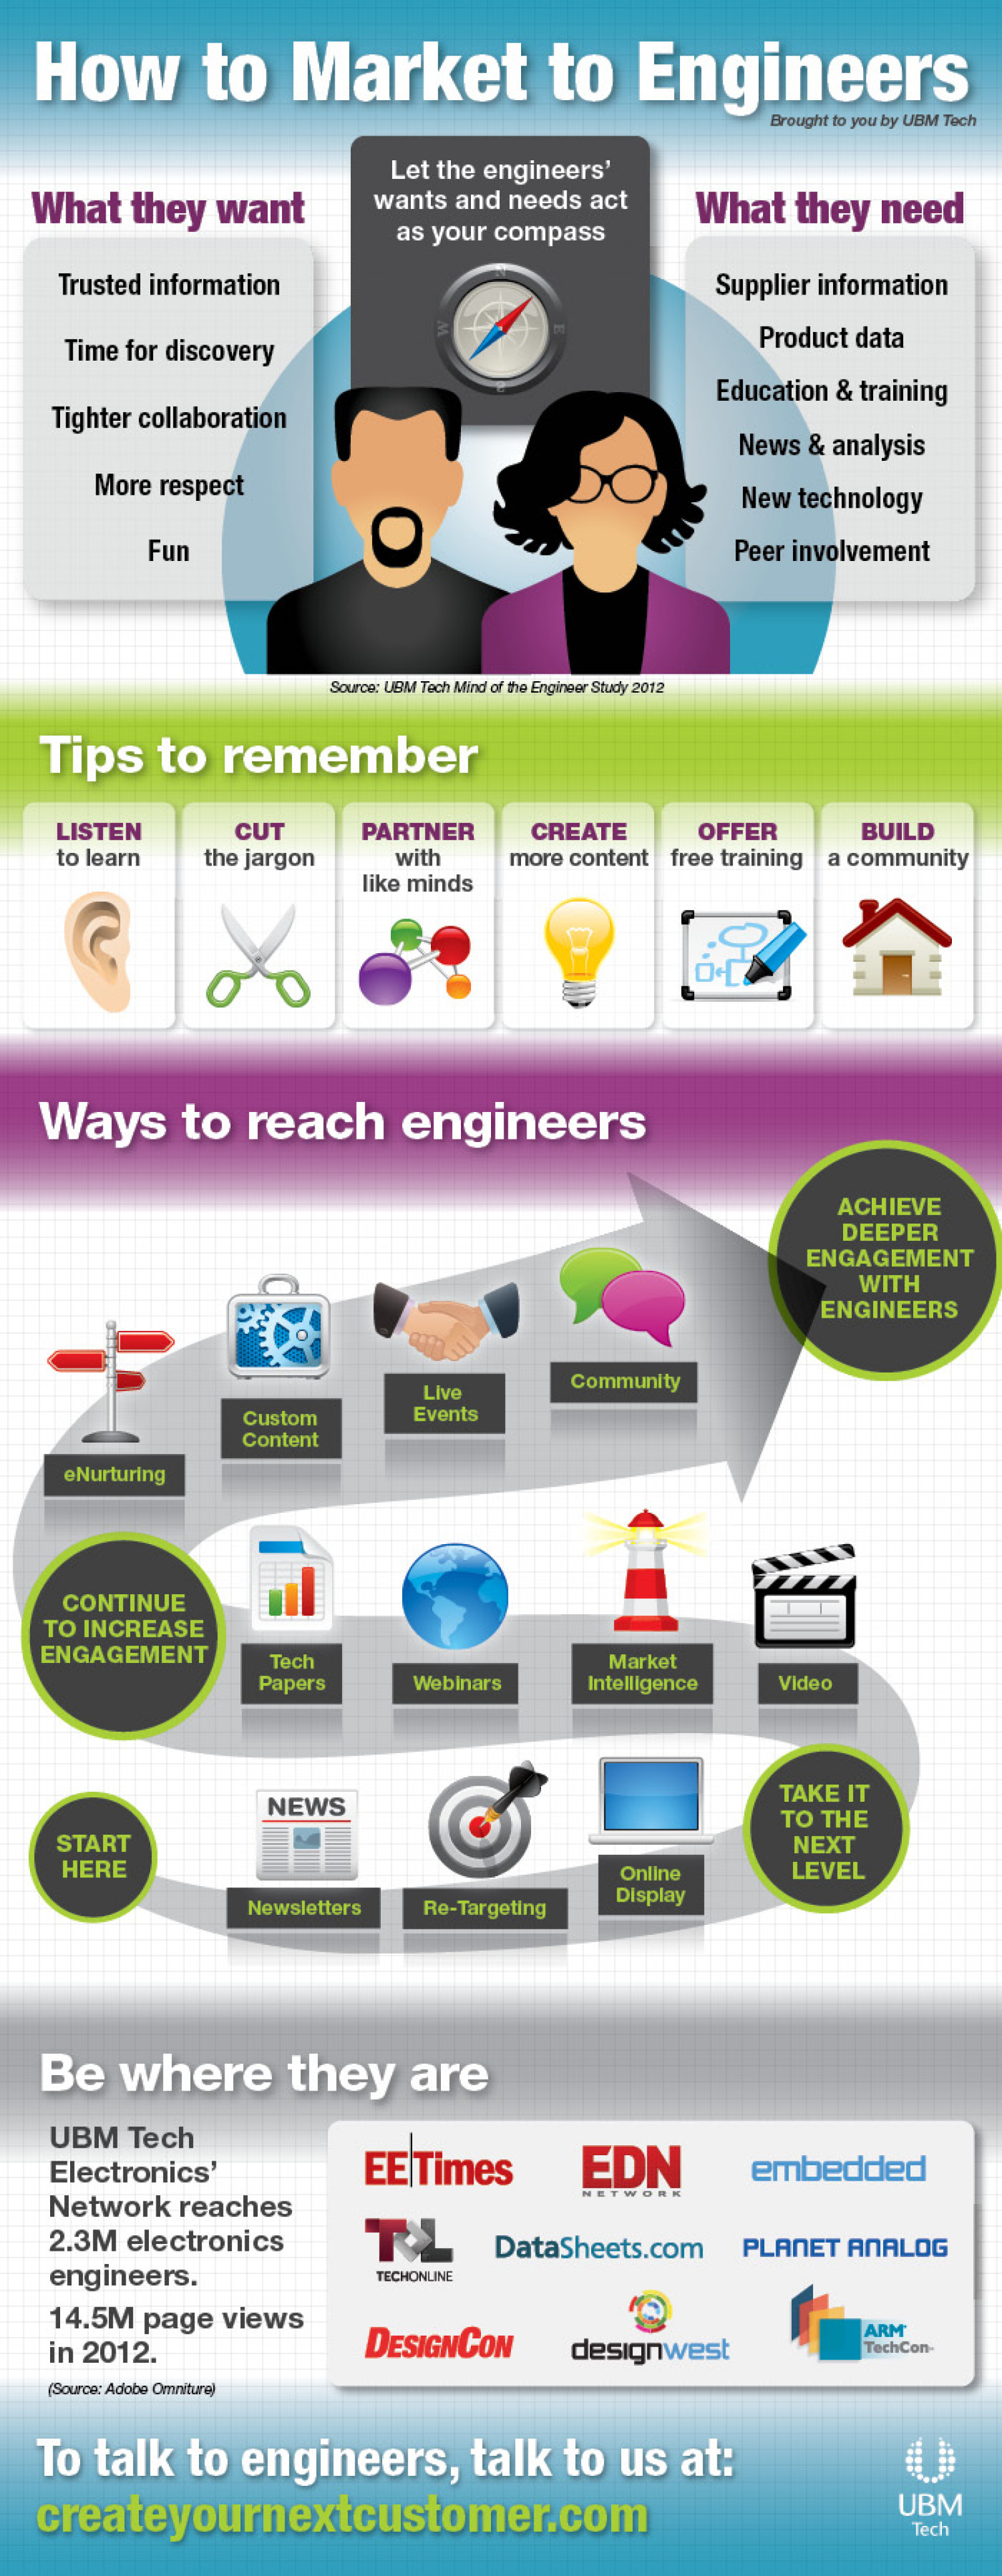 How to Market to Engineers Infographic